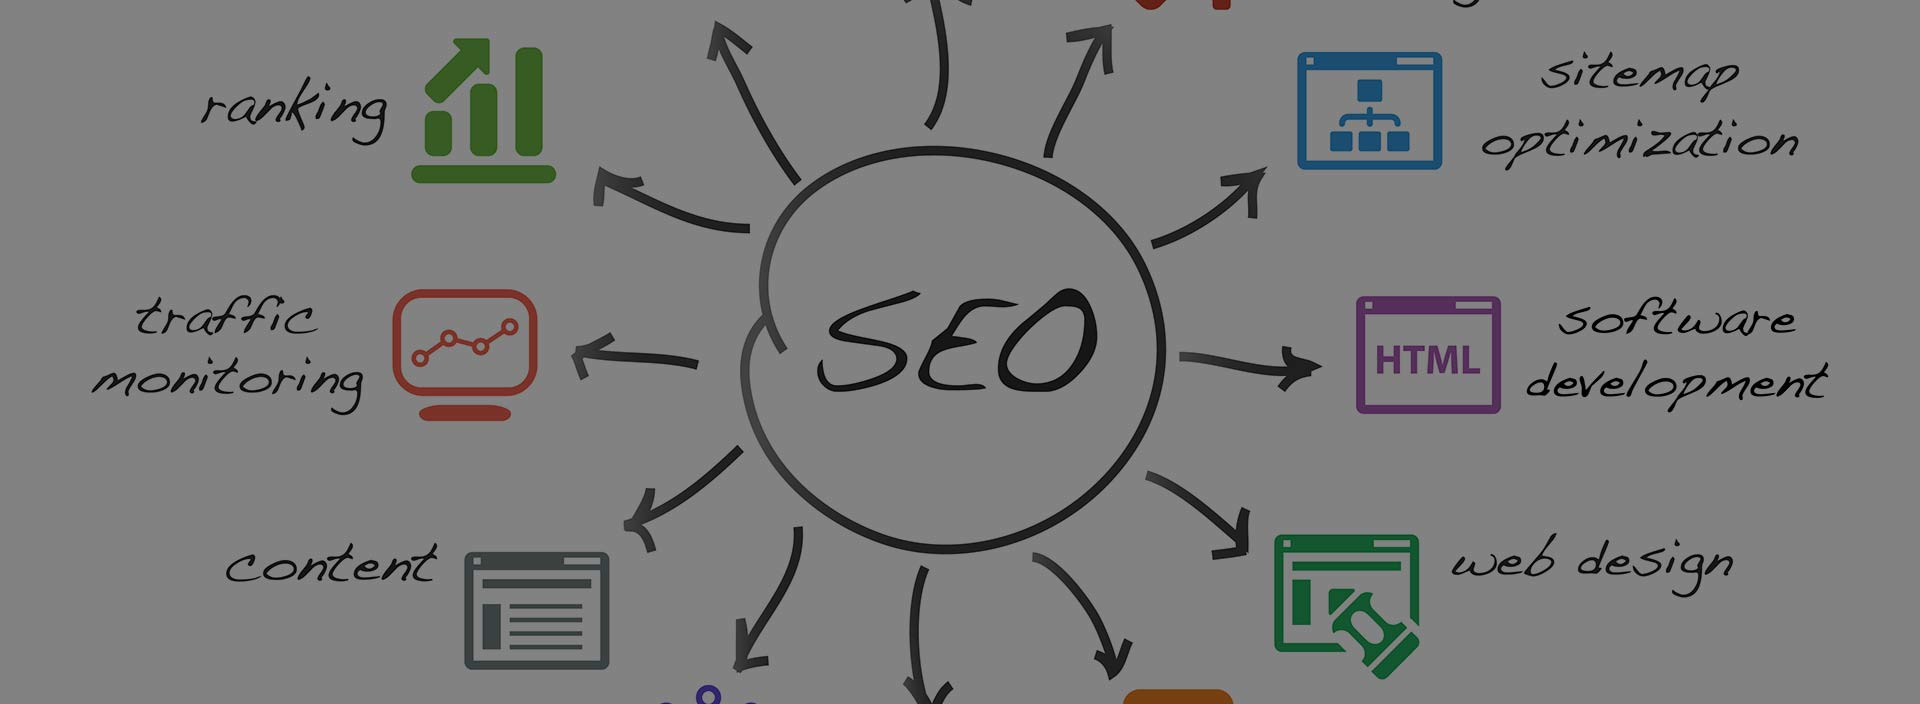 Picking Keywords for SEO and Digital Marketing